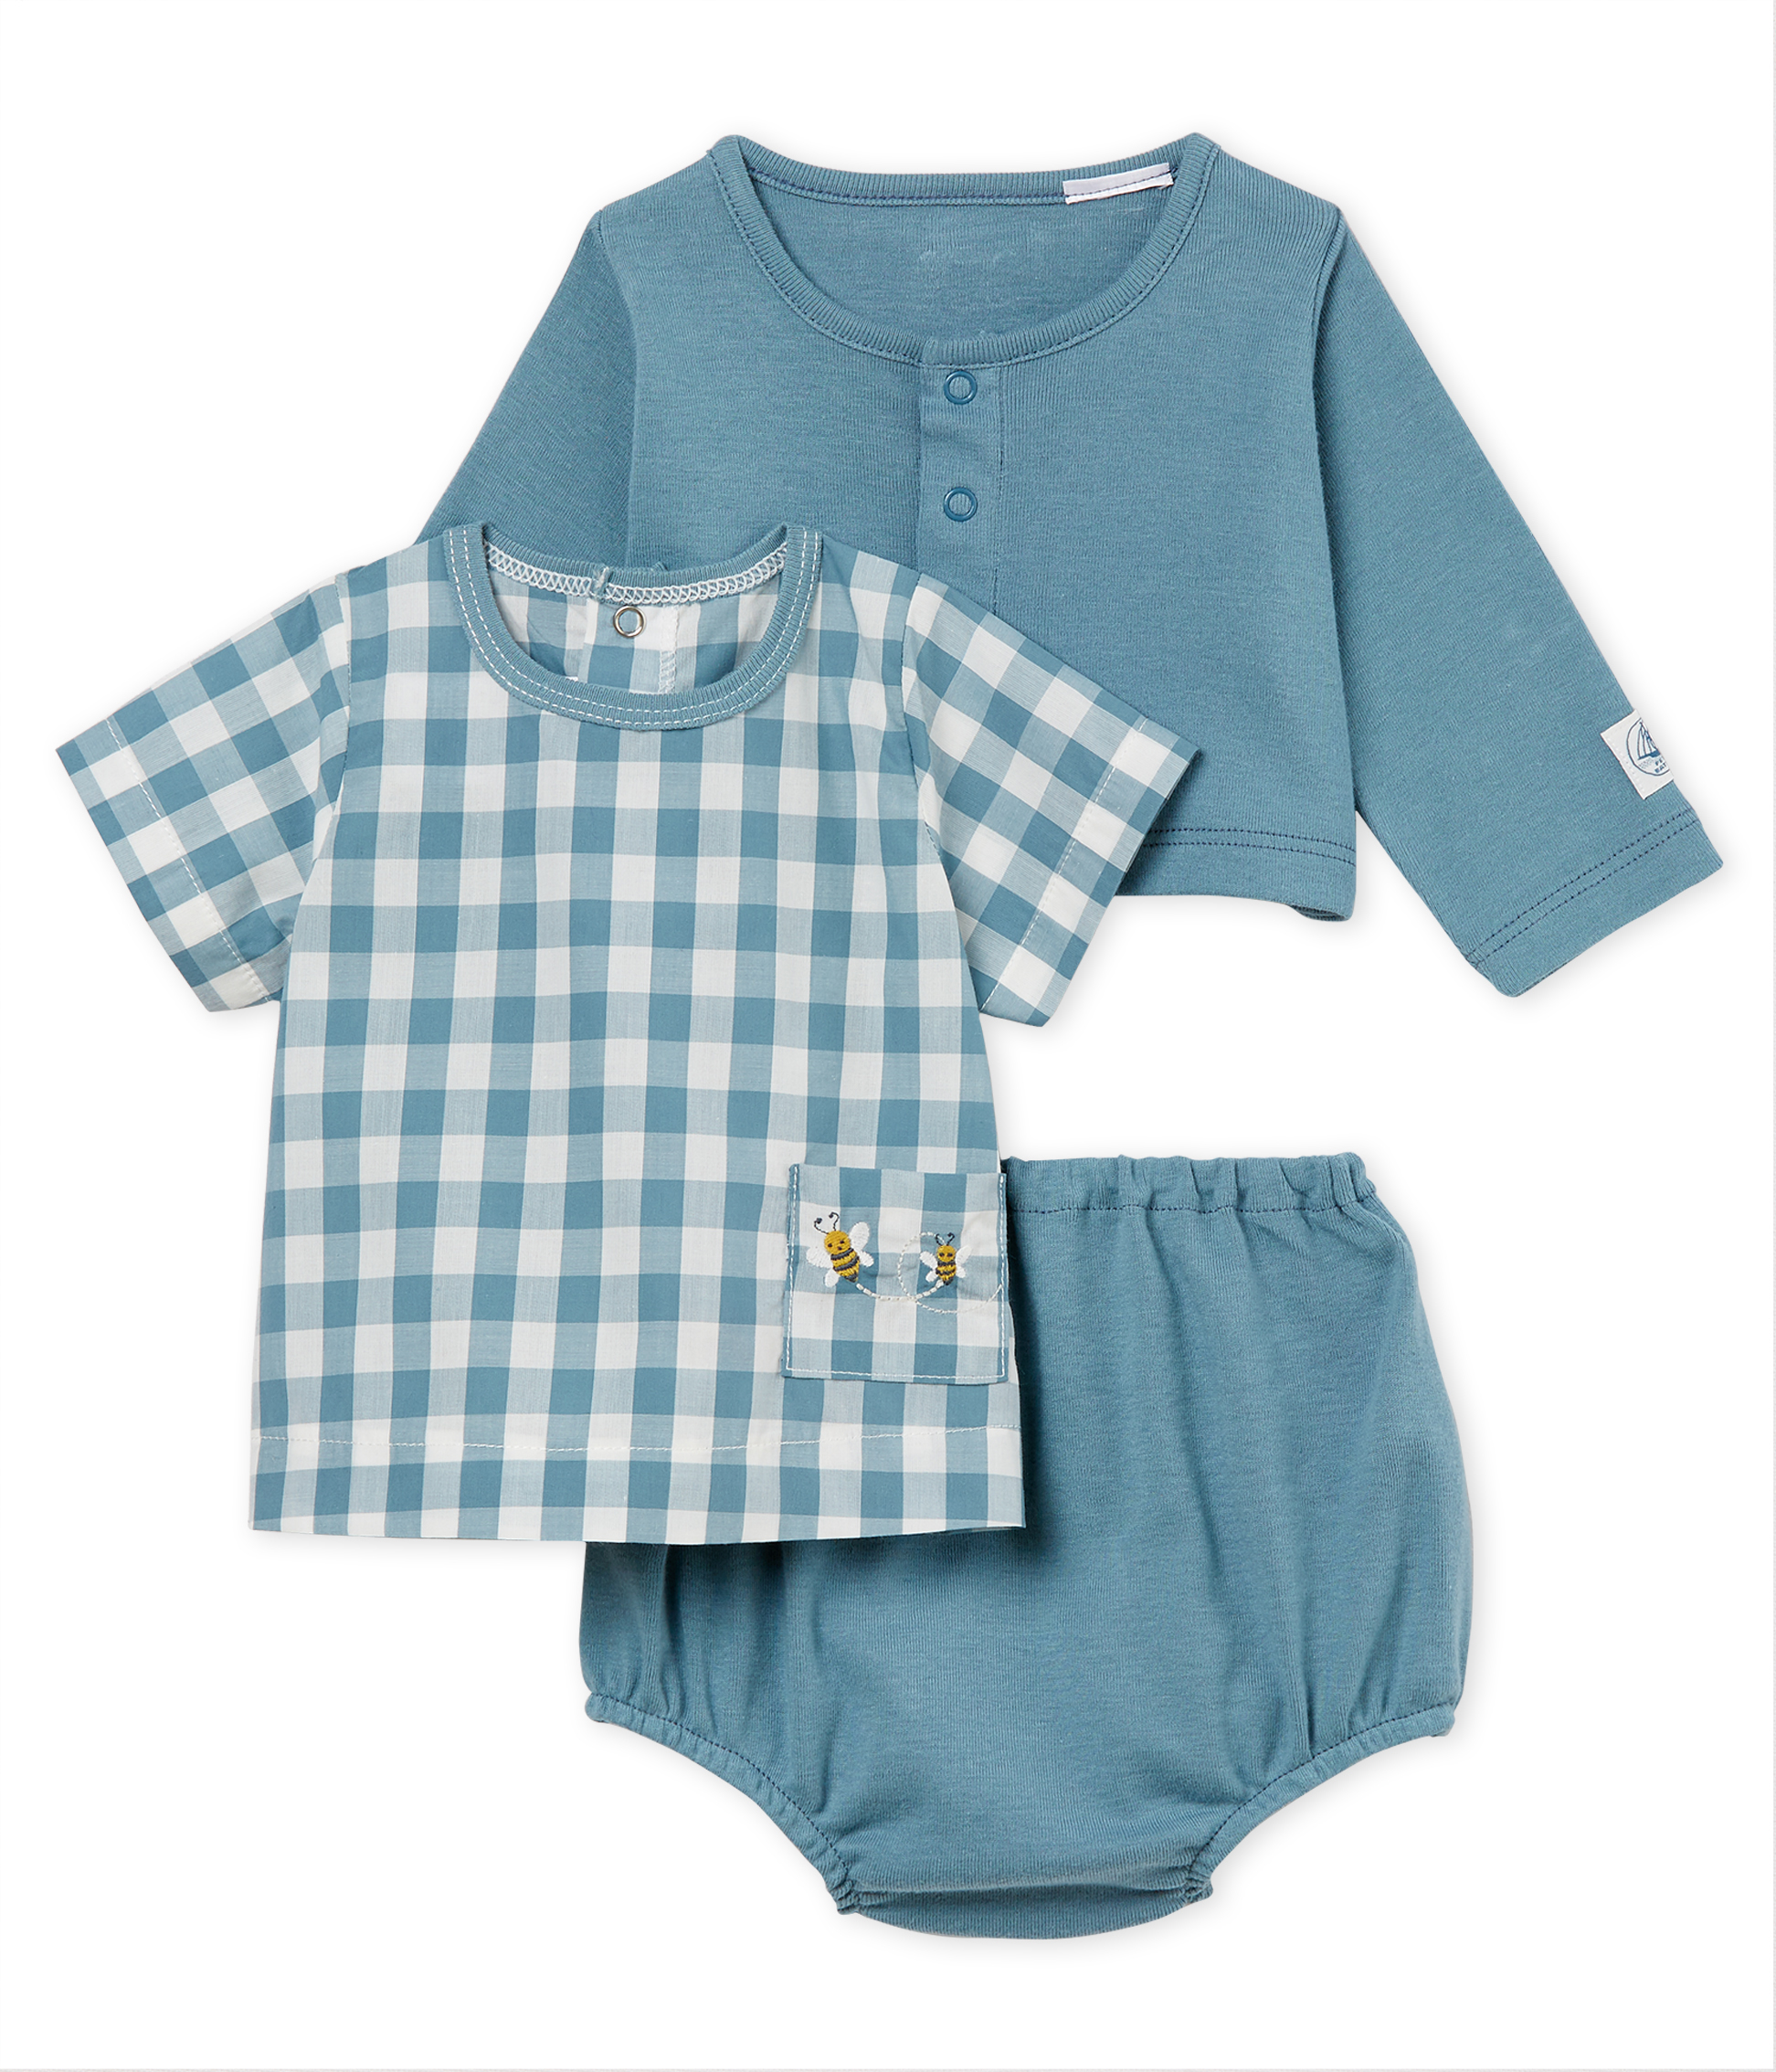 Baby boys' checked clothing - 3-piece set